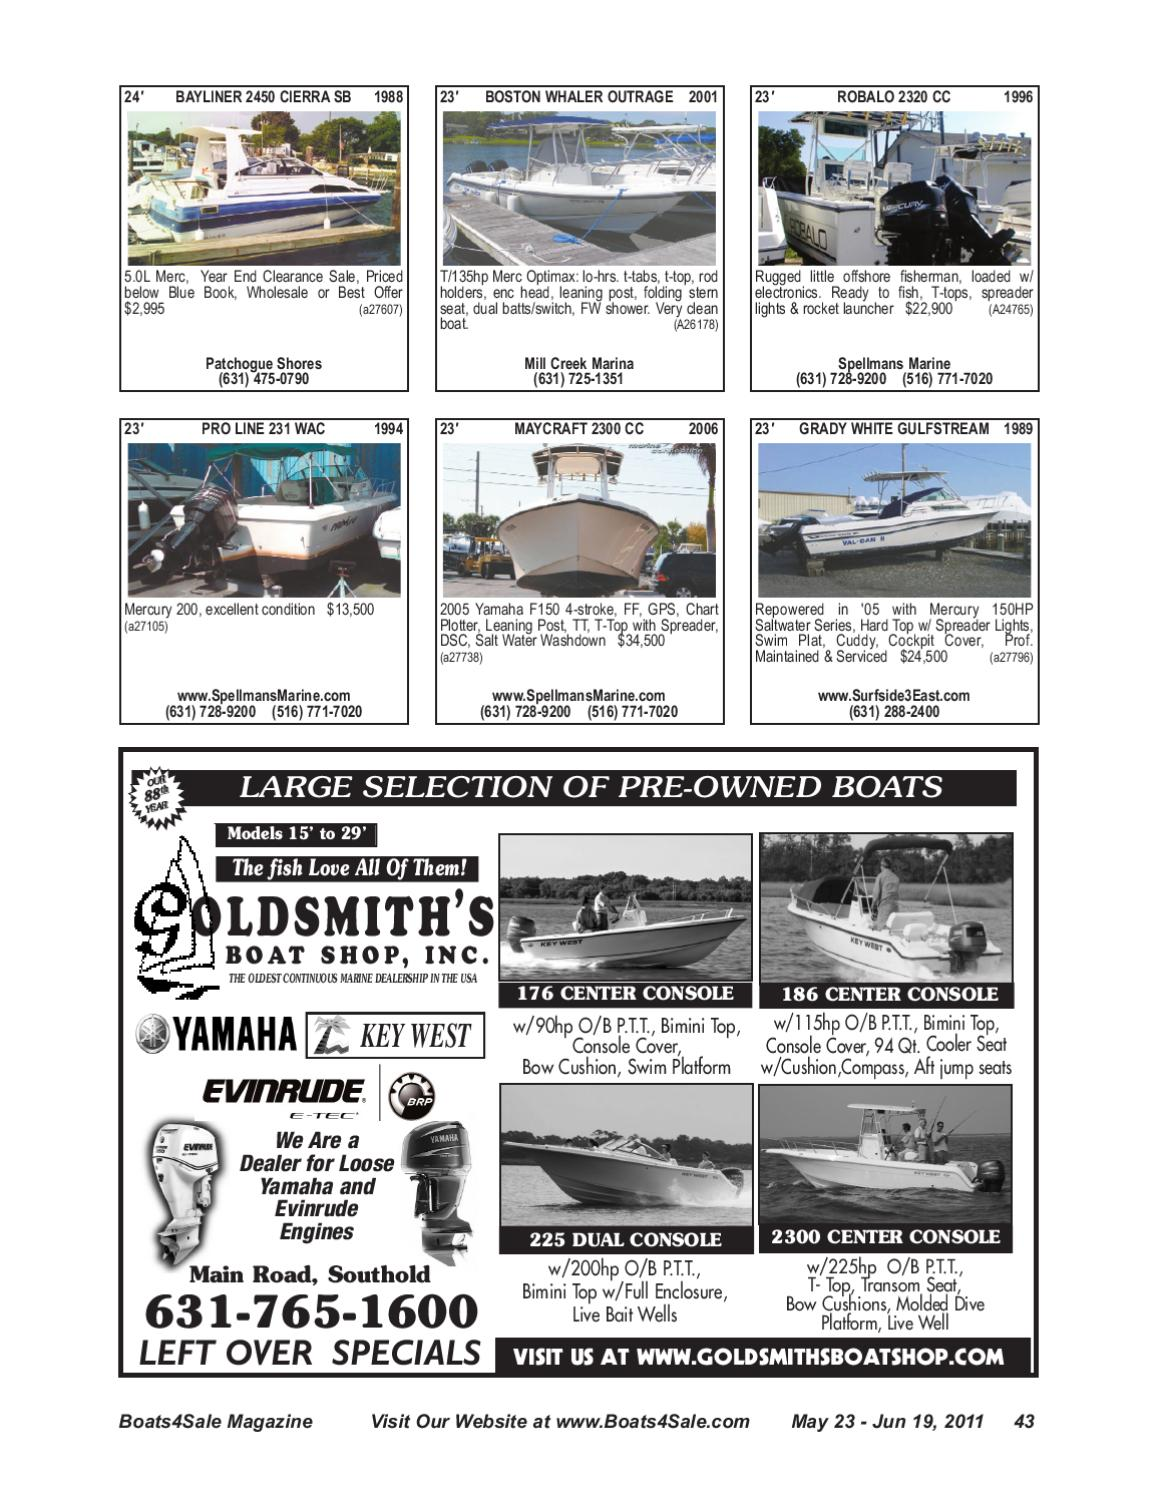 Boats4Sale com May 23 - June 19, 2011 by Boats4Sale com